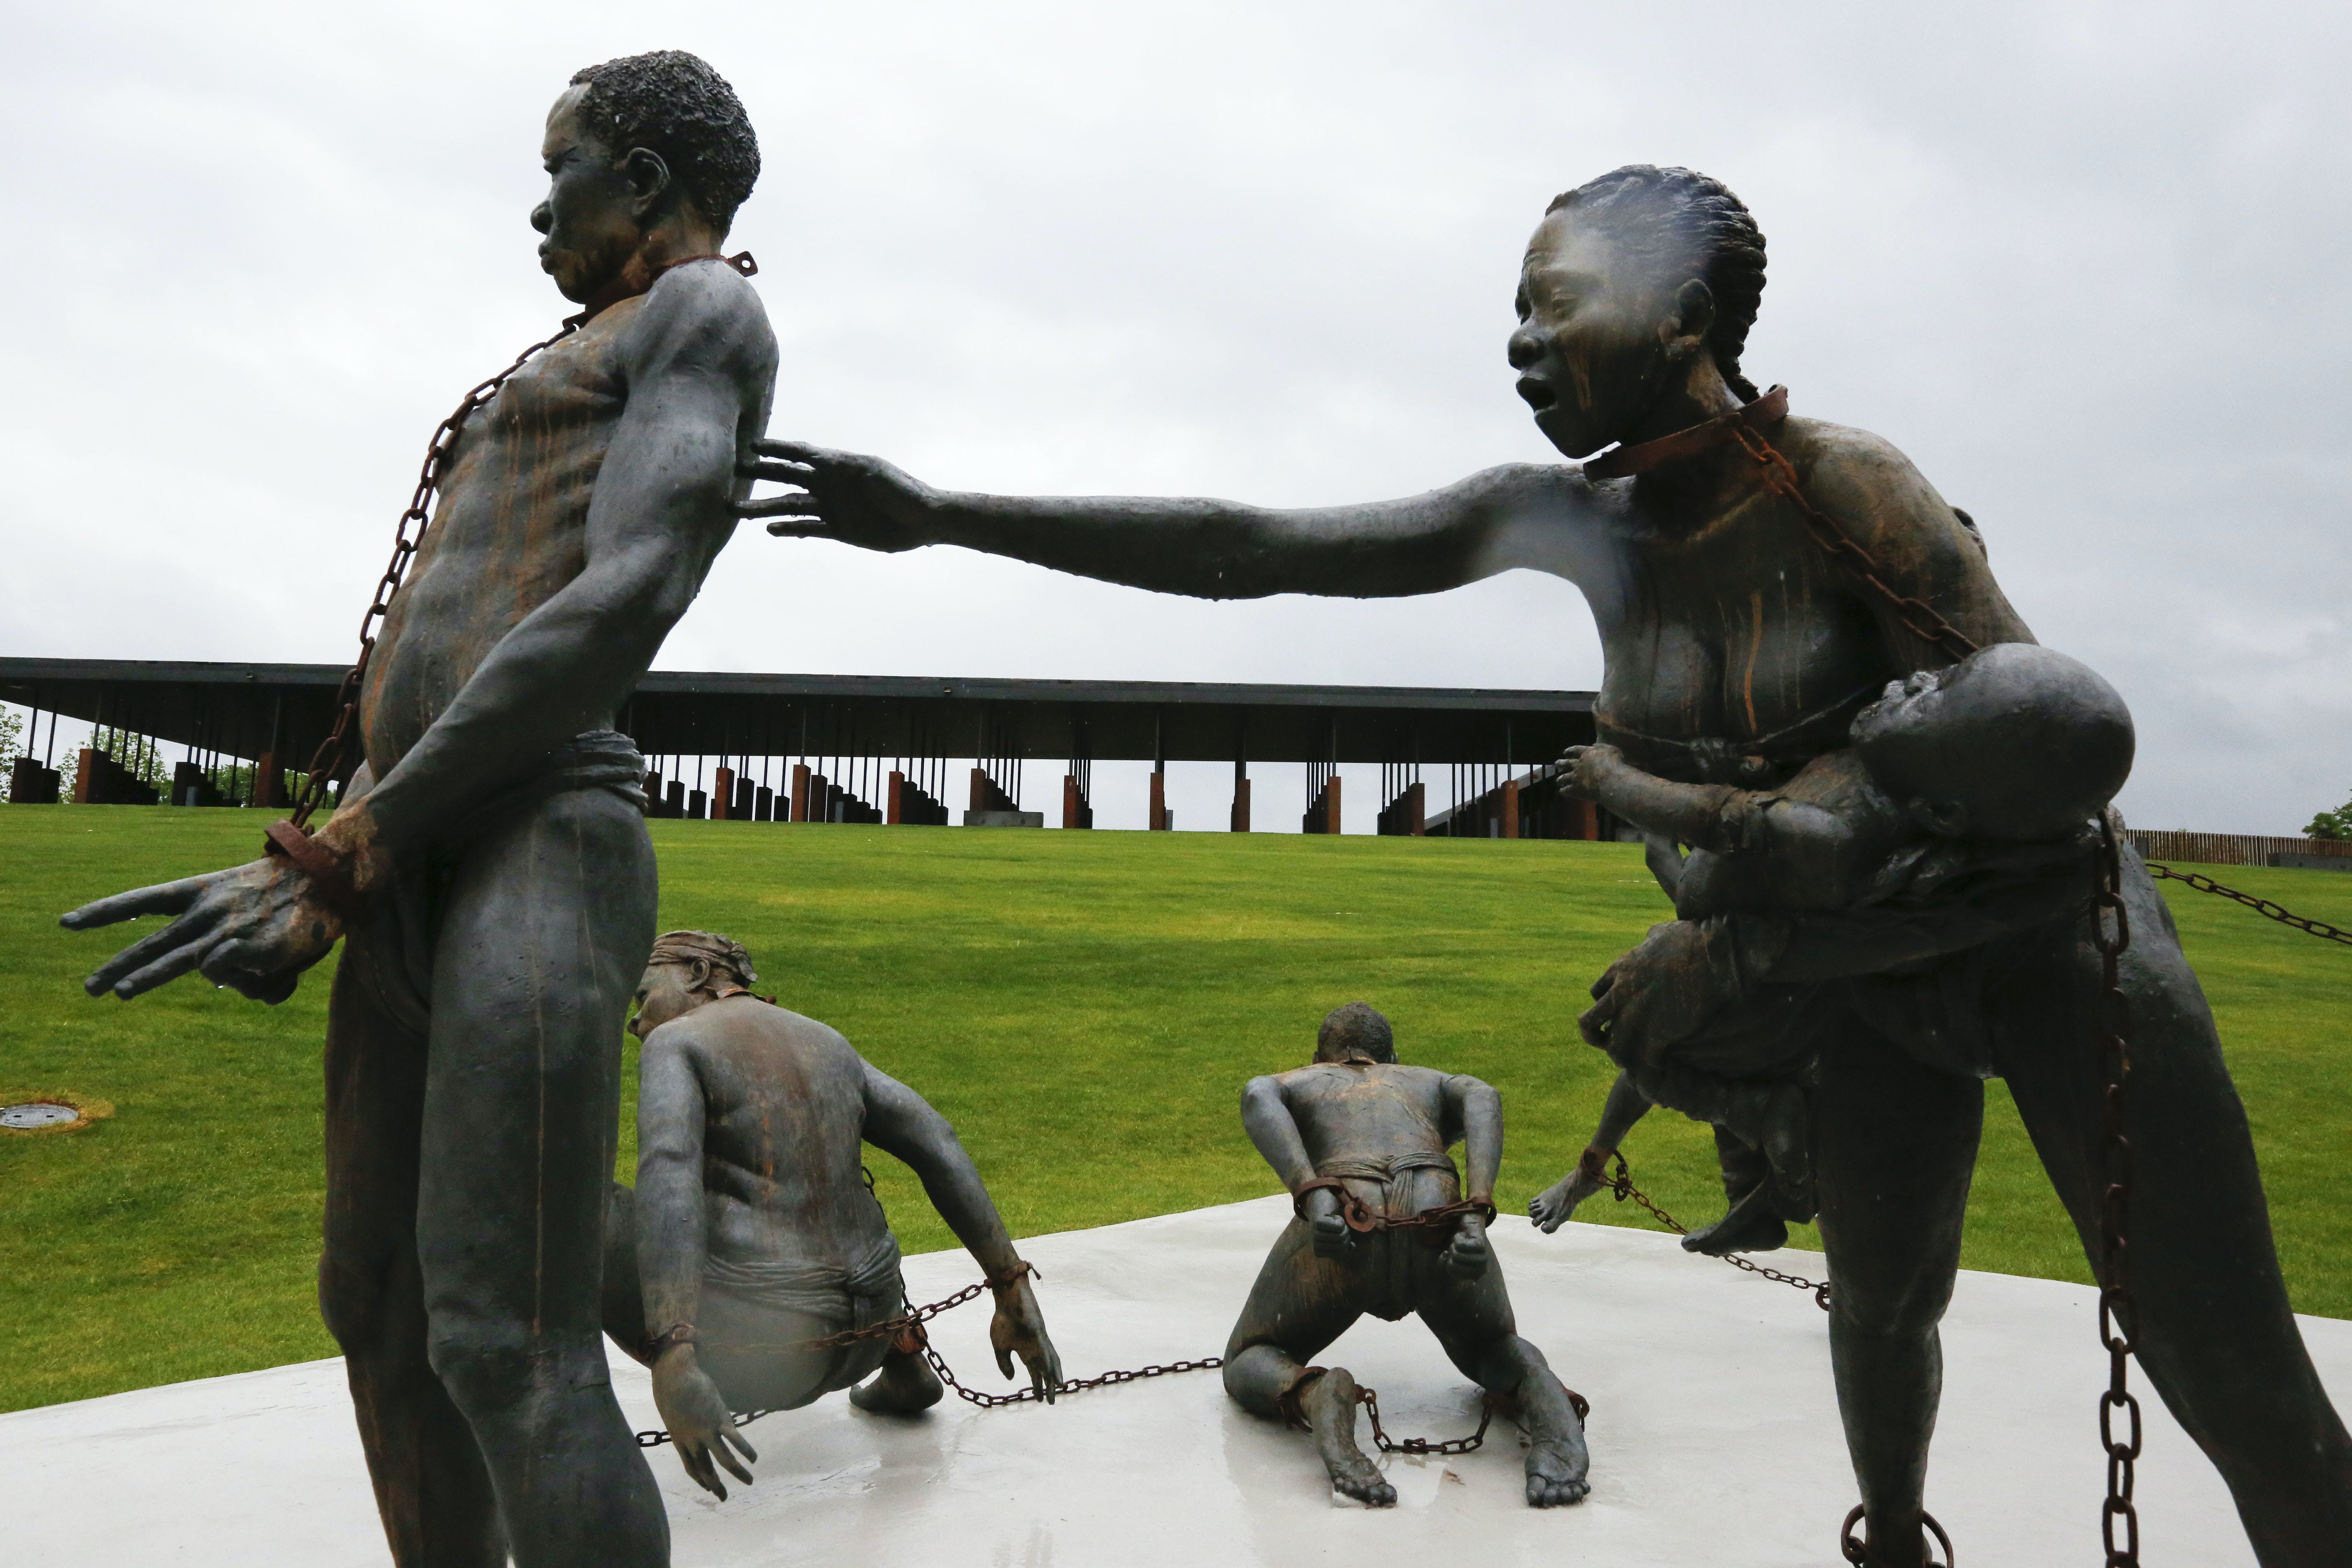 Part of a statue depicting chained people is on display at the National Memorial for Peace and Justice, a new memorial to honor thousands of people killed in racist lynchings, Sunday, April 22, 2018, in Montgomery, Ala. The national memorial aims to teach about America's past in hope of promoting understanding and healing. It's scheduled to open on Thursday. (AP Photo/Brynn Anderson)